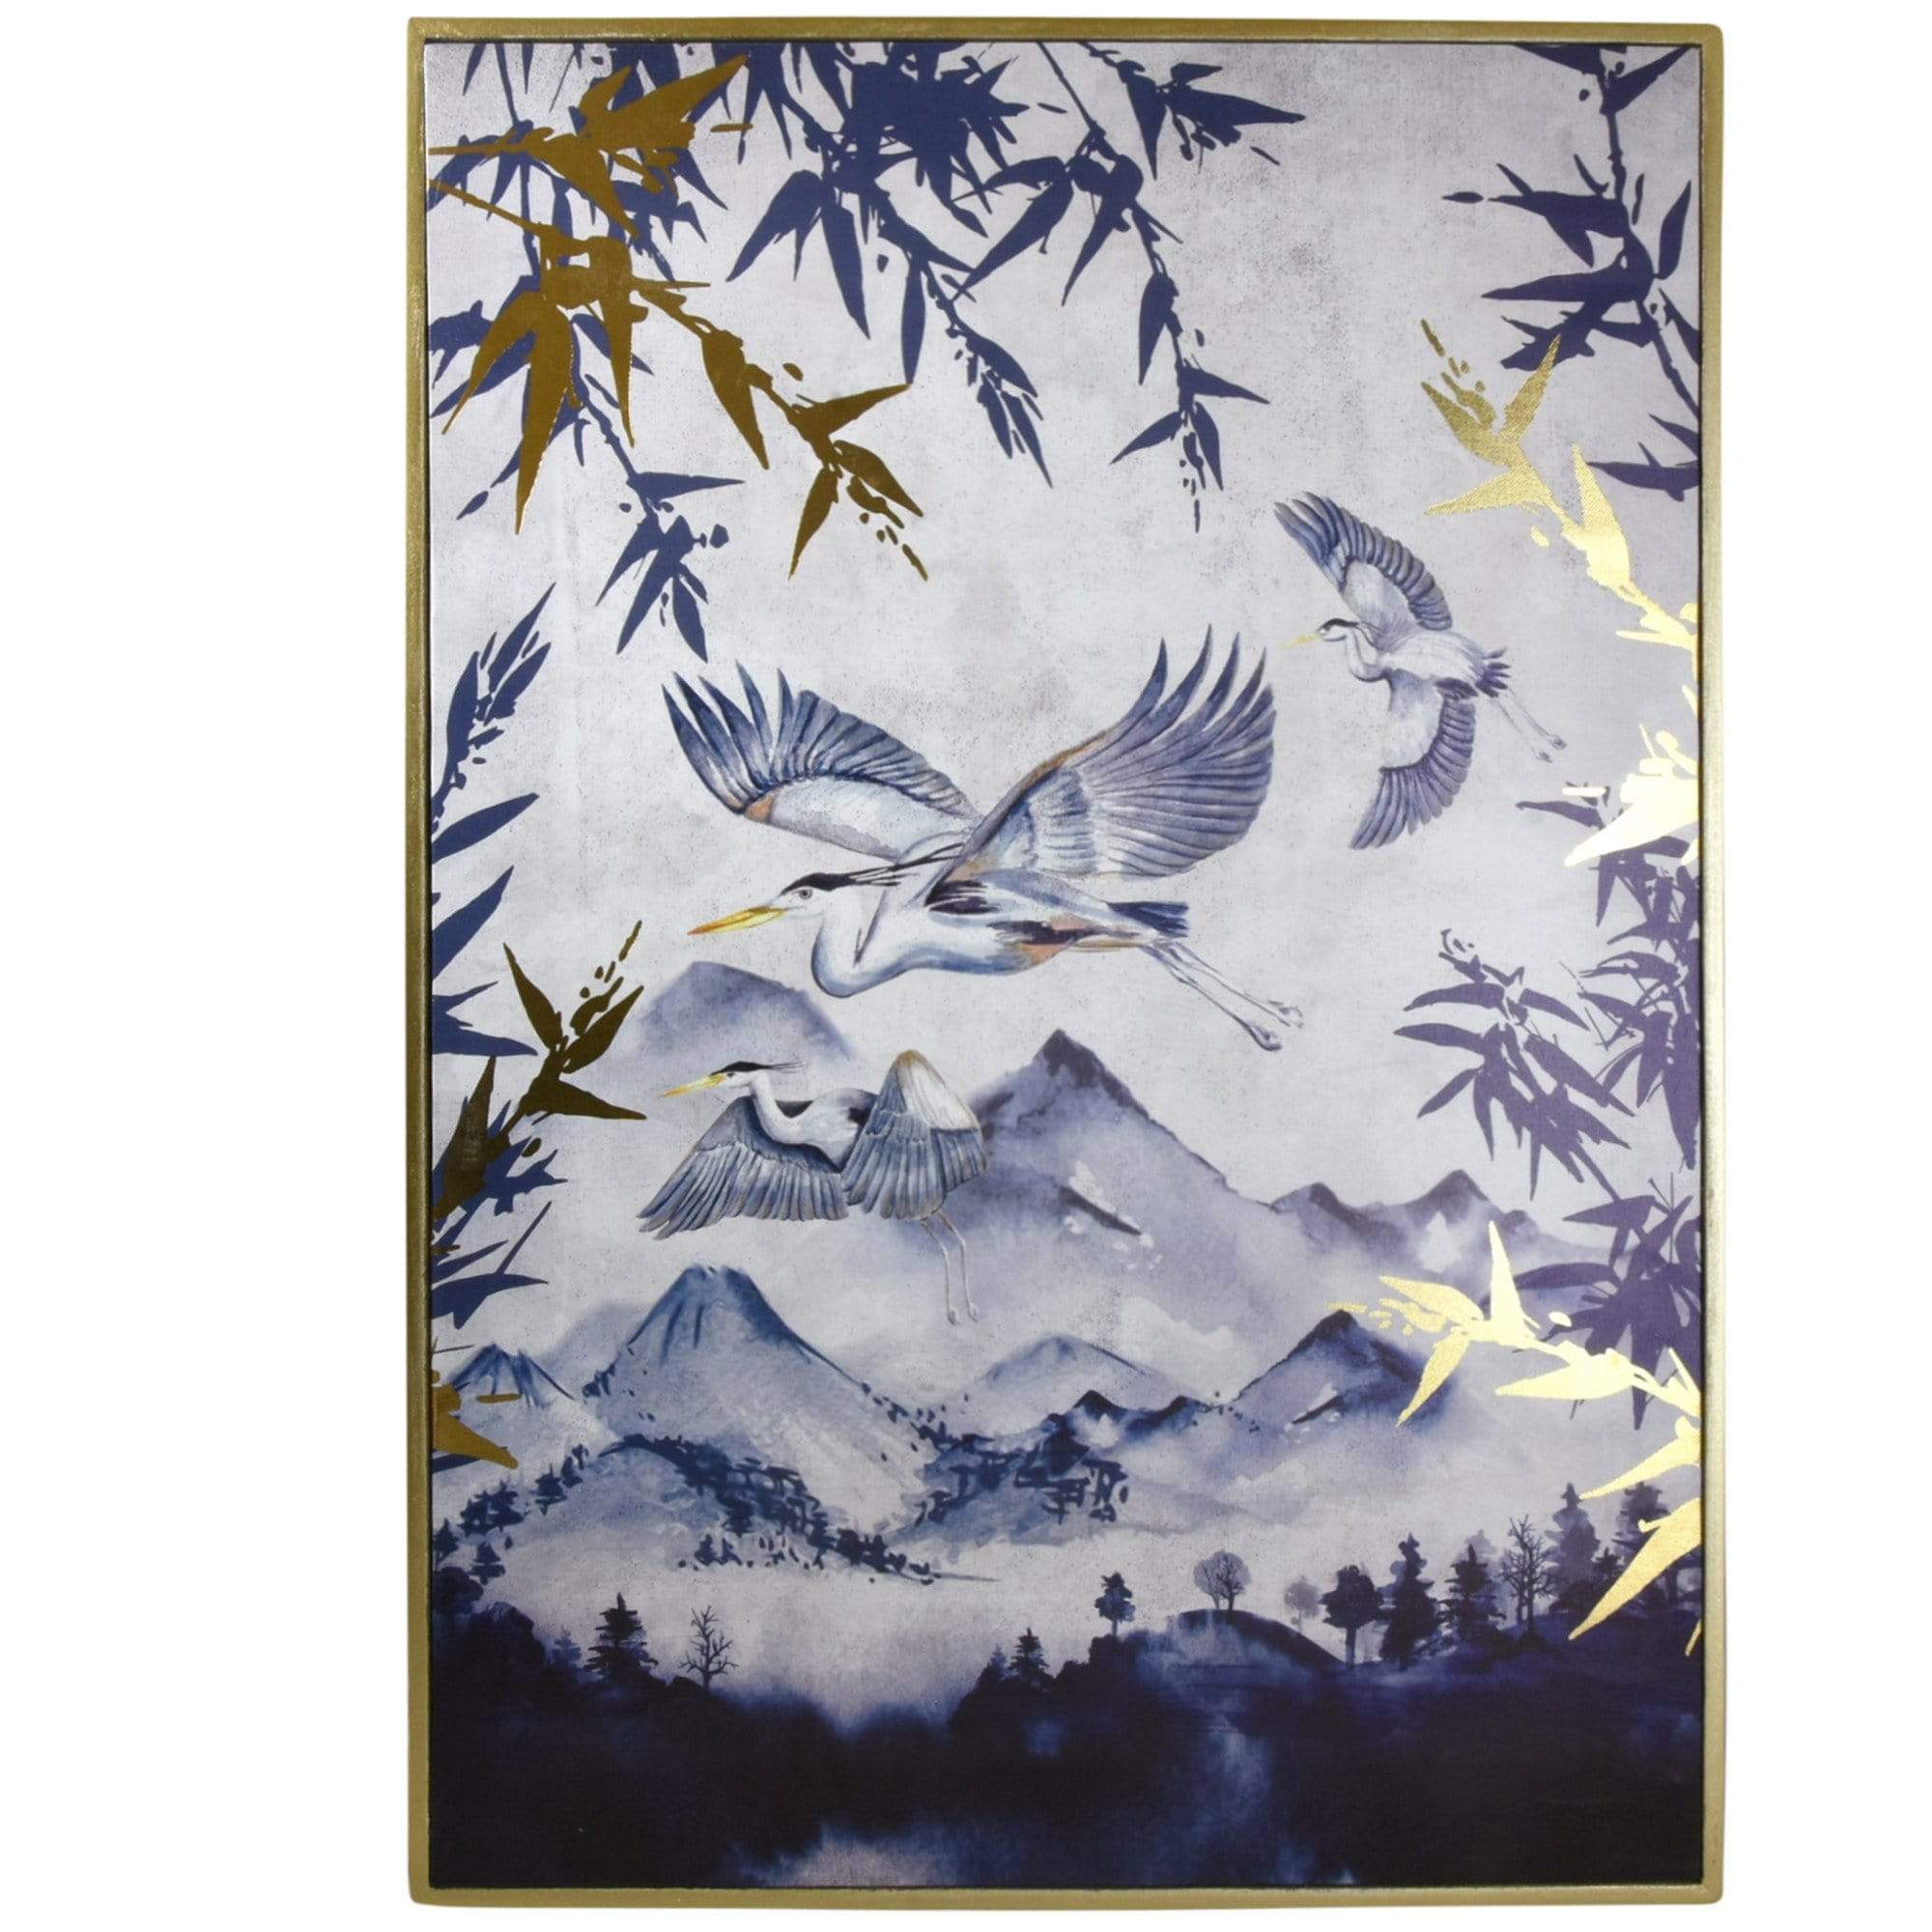 Oriental Heron Design Canvas Print with Gold Wooden Frame 50x70 cm 2PK